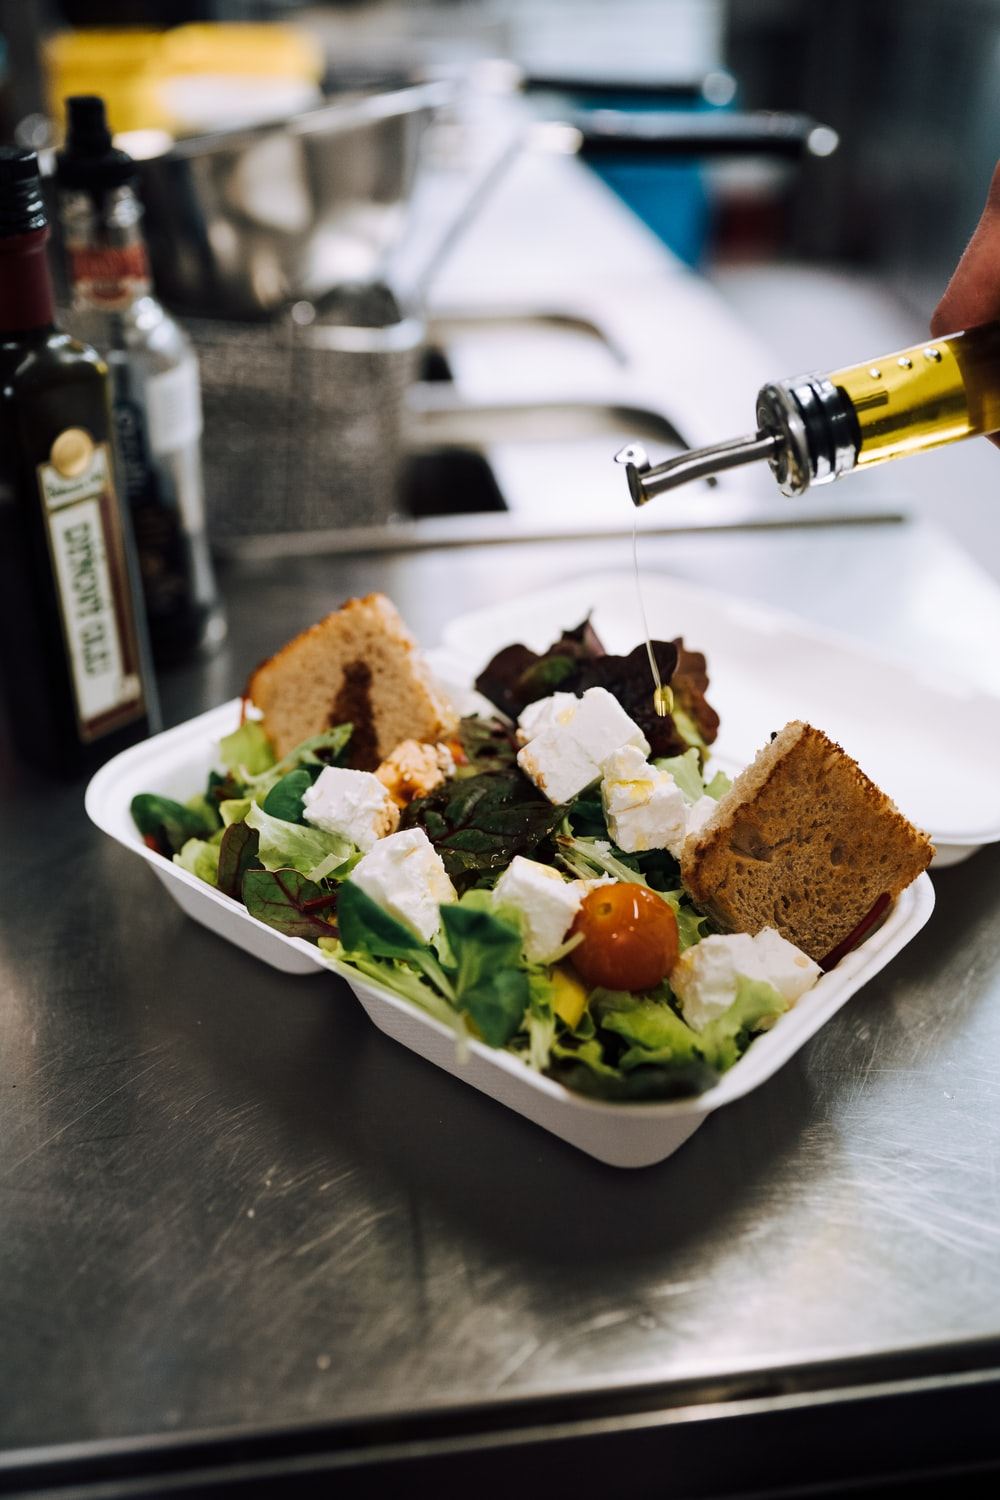 olive oil poured into green vegetable salad with cheese and croutons